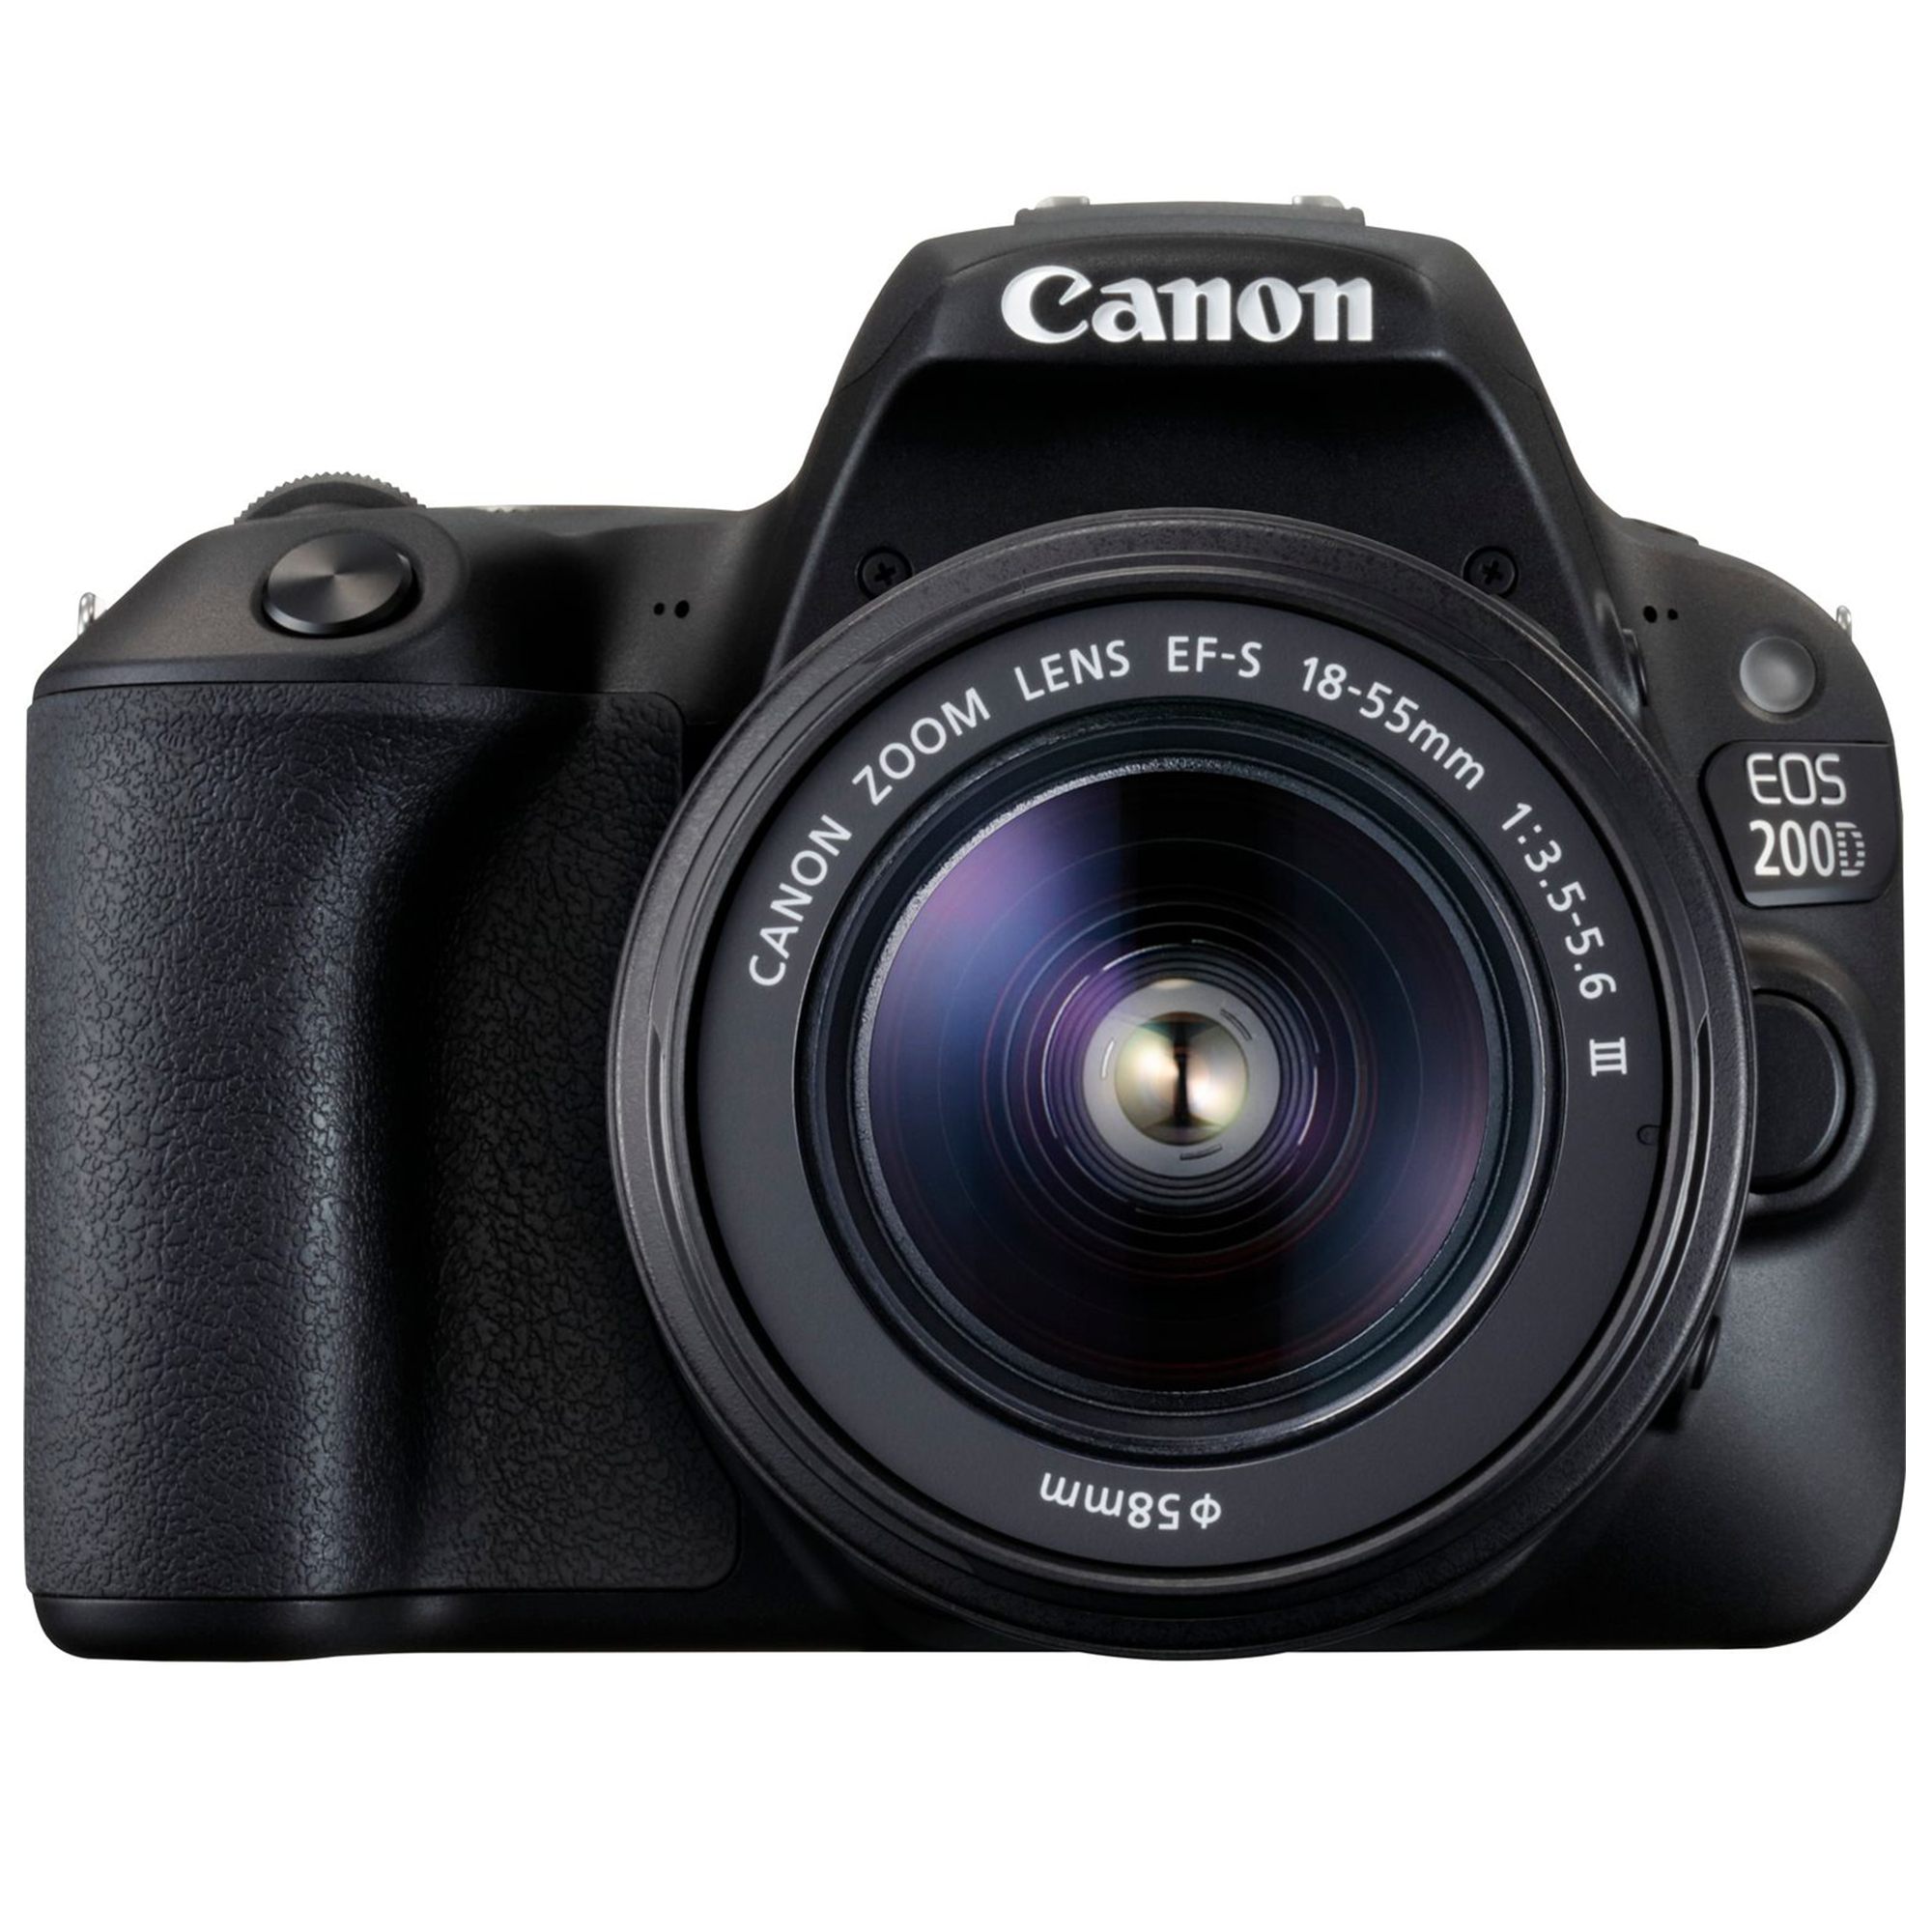 CANON EOS 200D with 18-55 mm Lens DC Kit + FREE GIFT VANGUARD ALTA CA 203AP , Free 8 Gb Memory Card